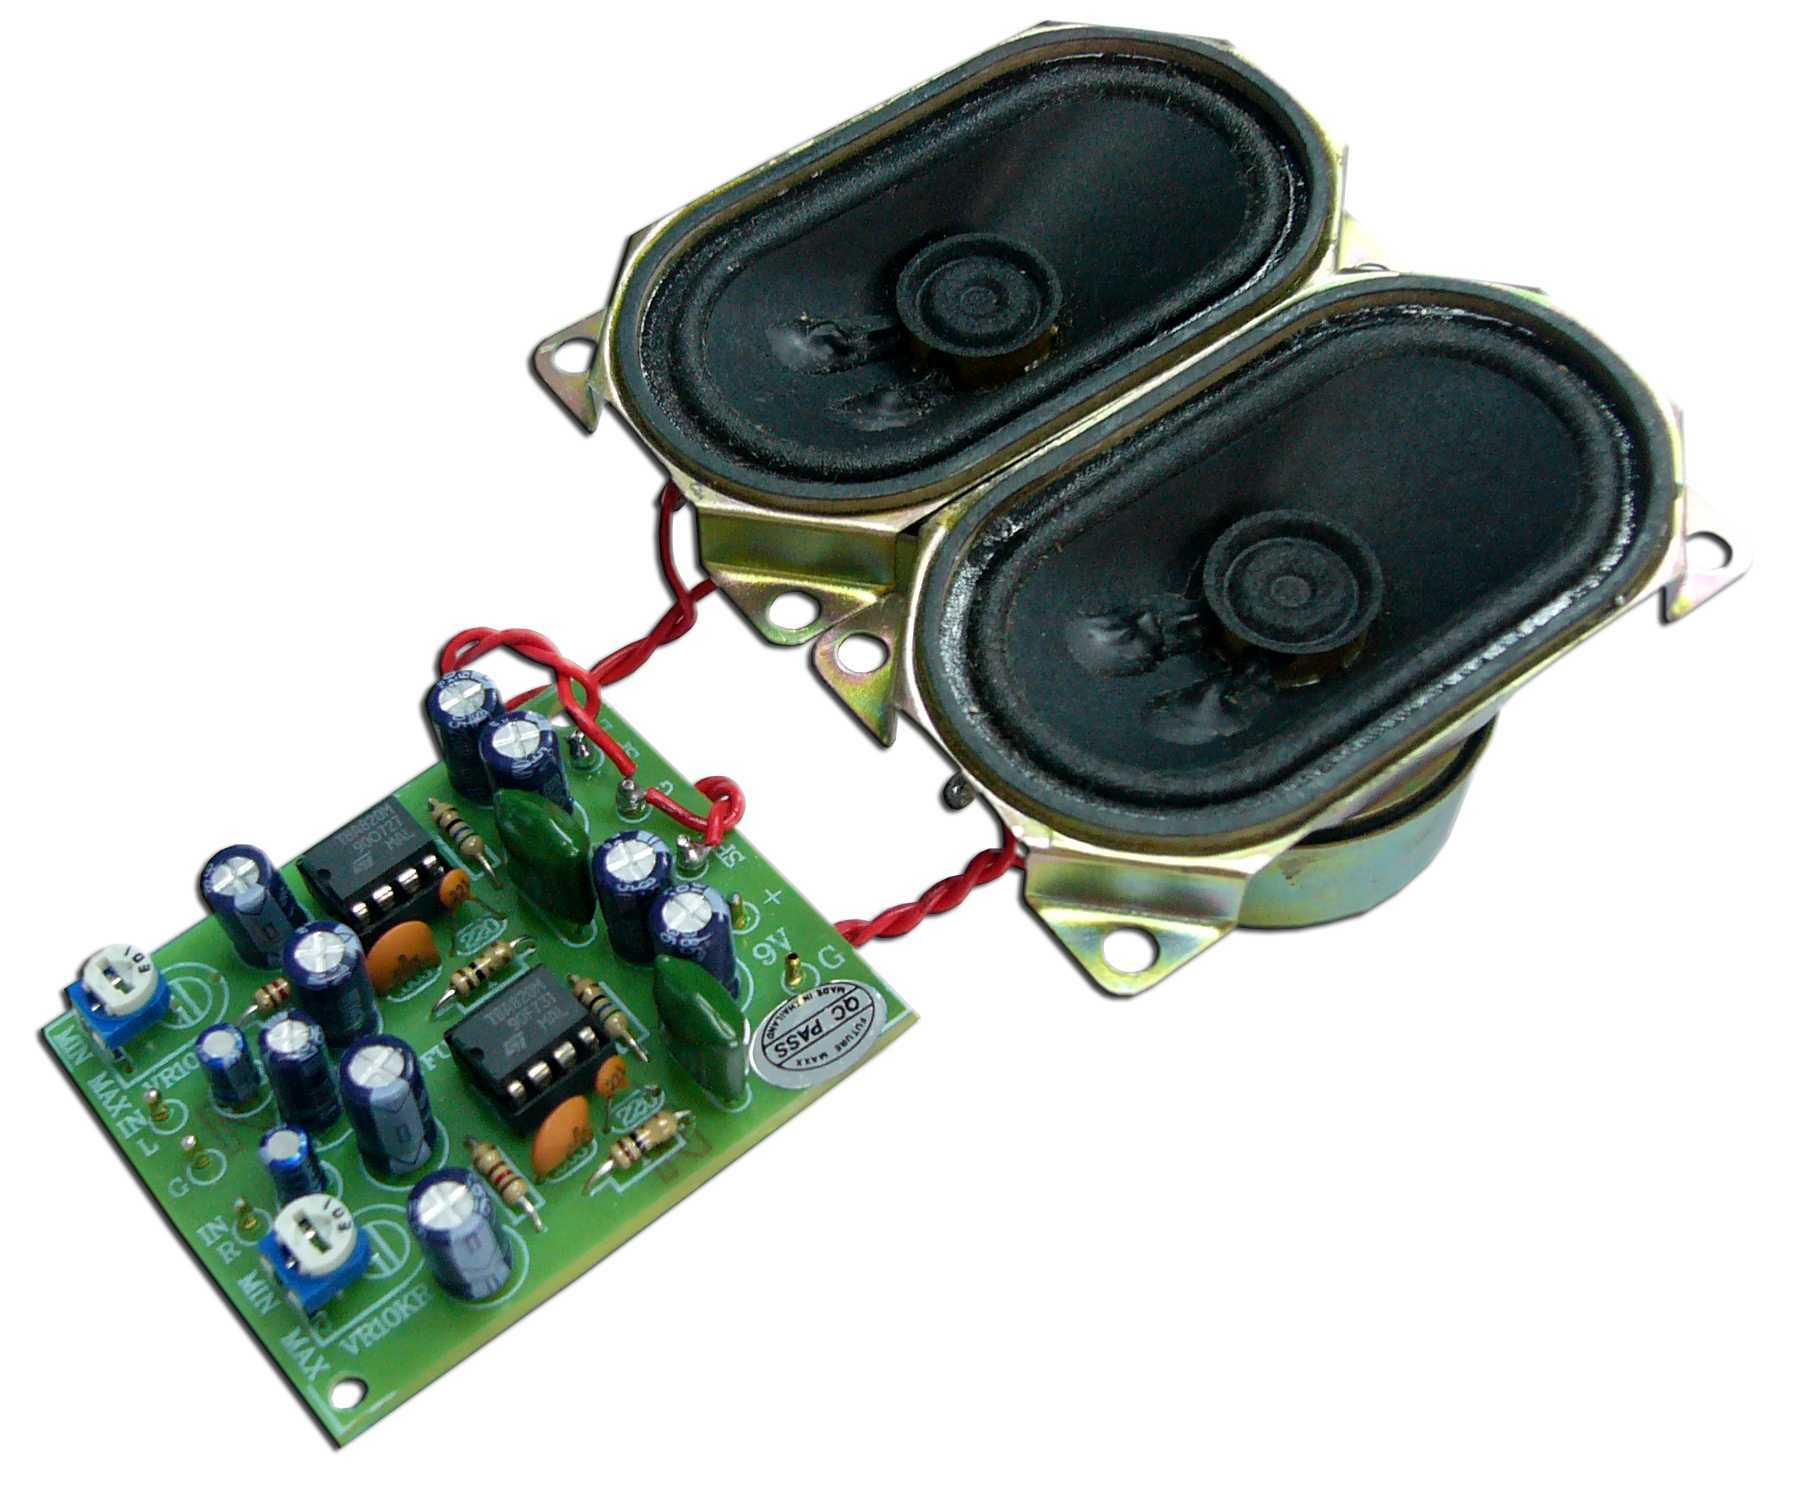 Mini Audio Amplifier Kit 2w Stereo With Speakers Electronic Kits Power Transistor Circuits Projects Sound Circuit